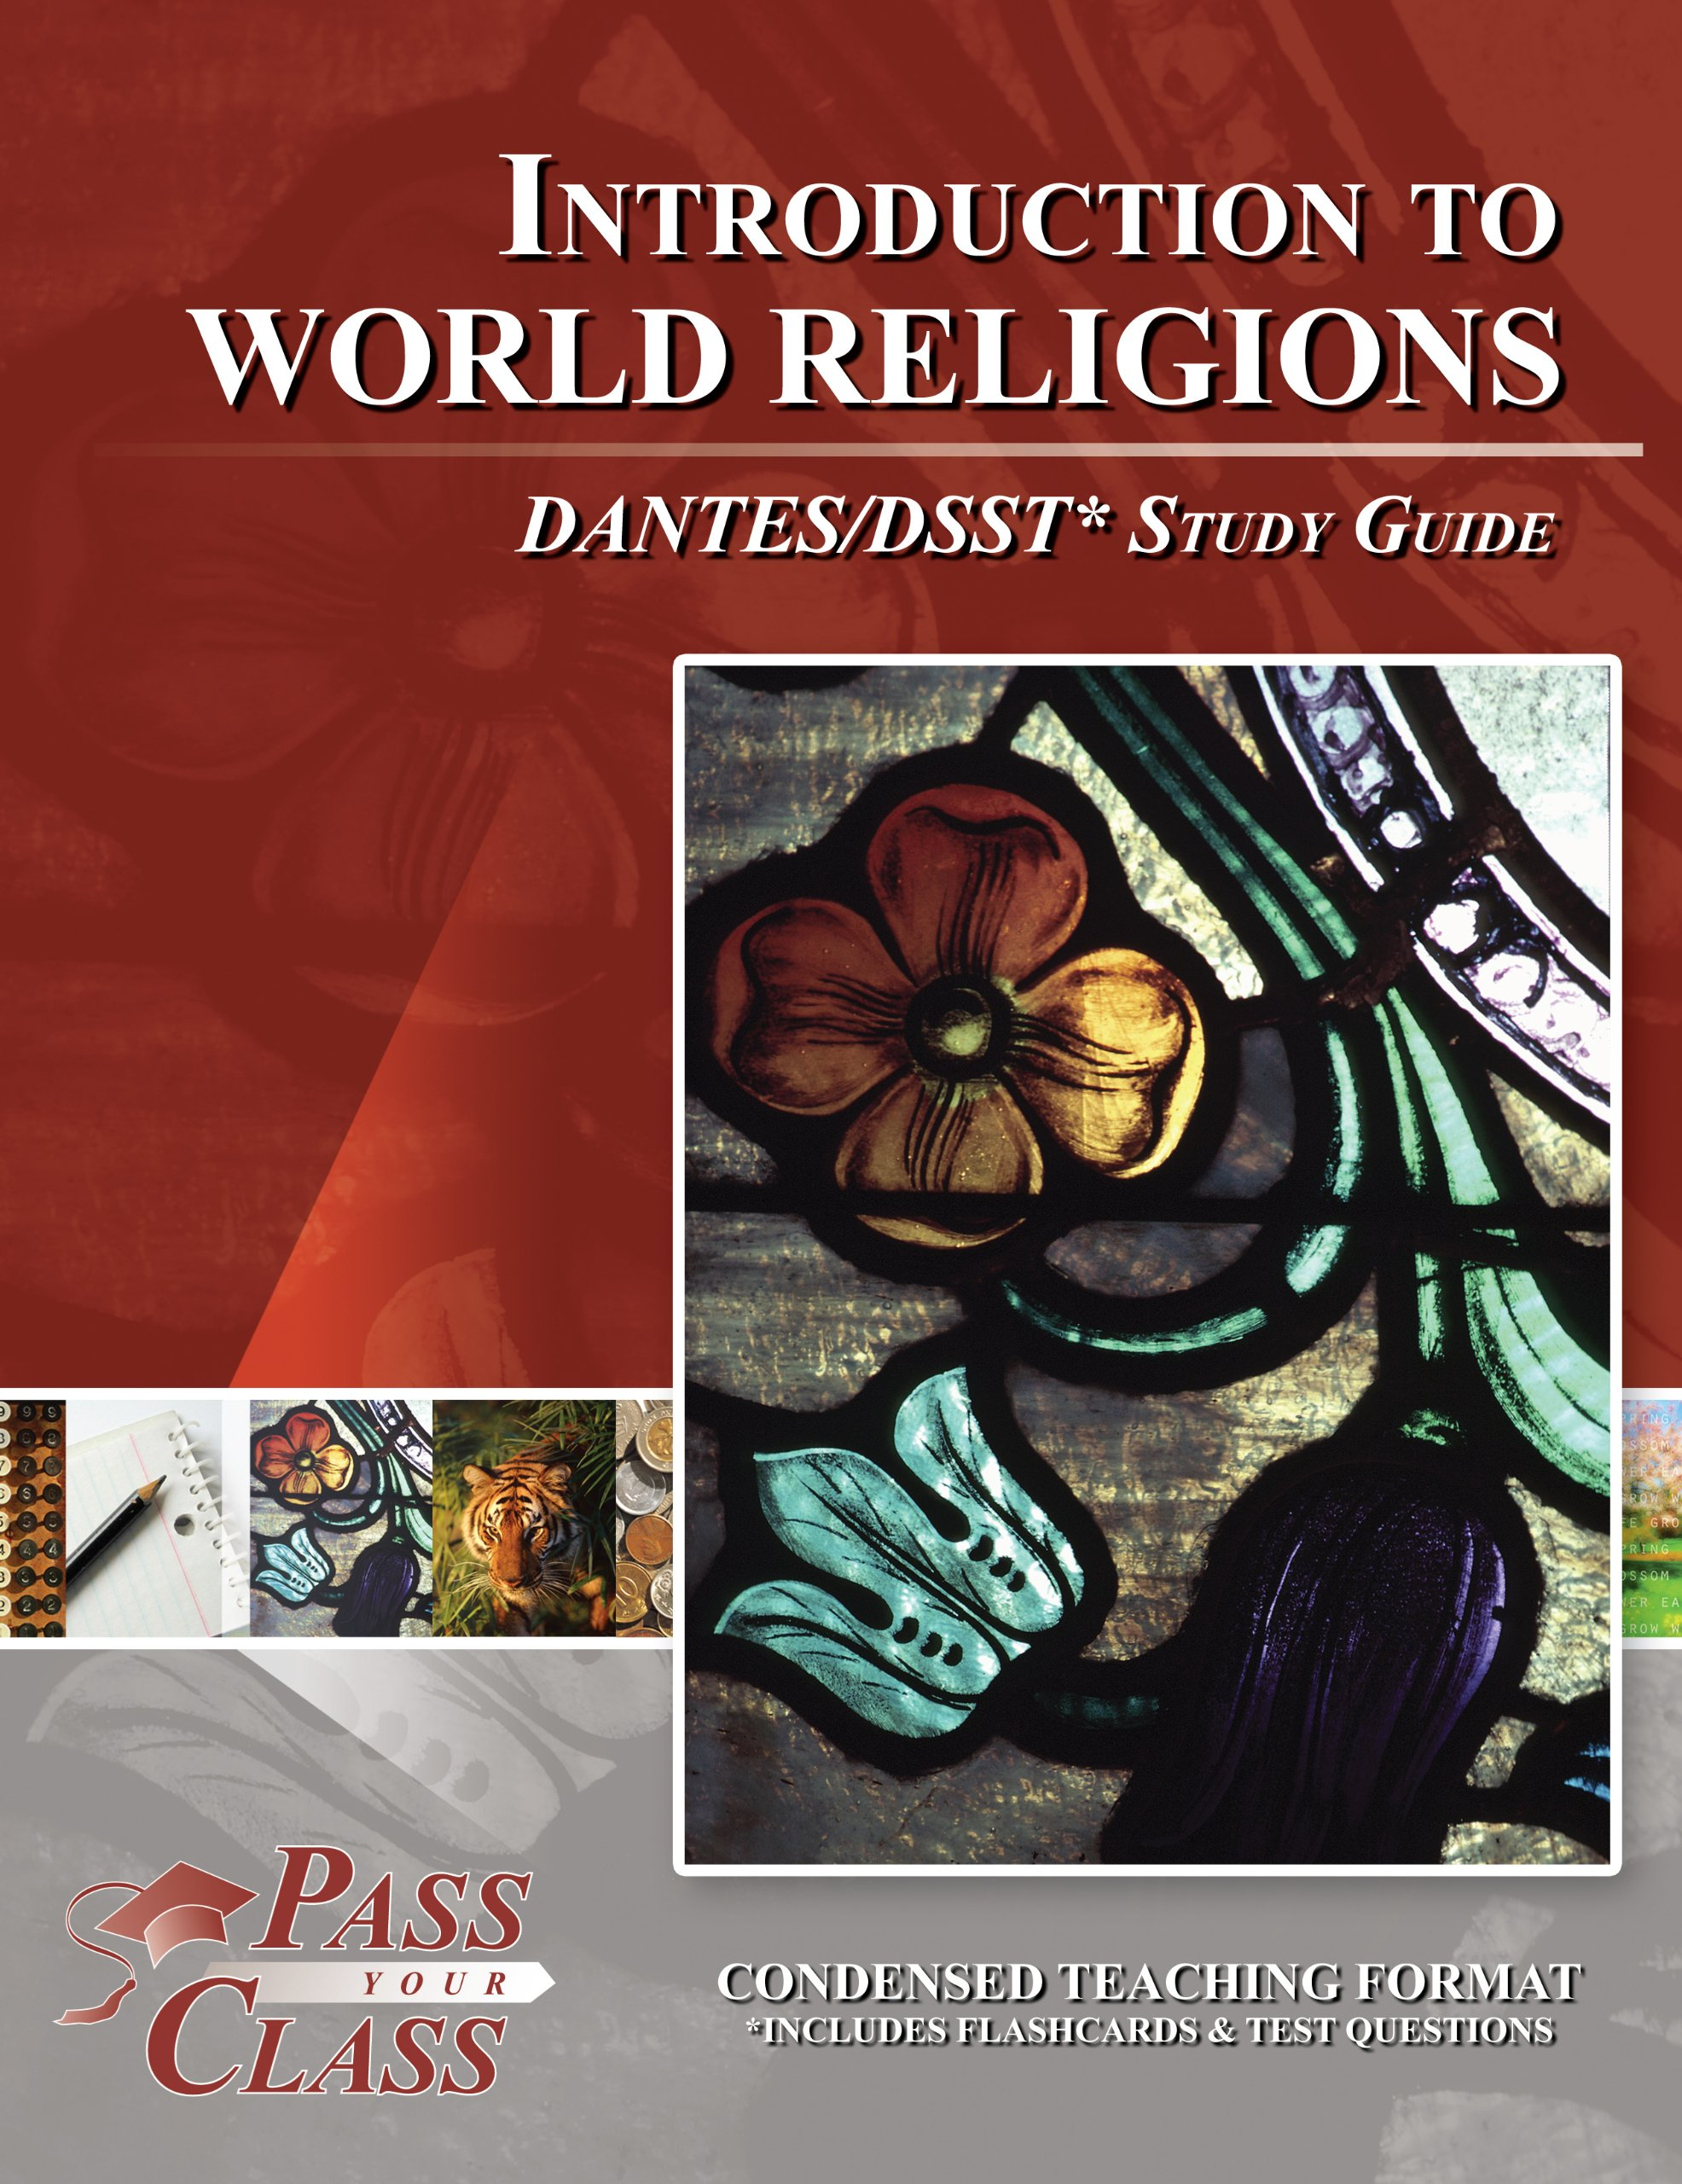 Dsst introduction to world religions dantes study guide dsst introduction to world religions dantes study guide passyourclass 9781614330547 amazon books xflitez Gallery